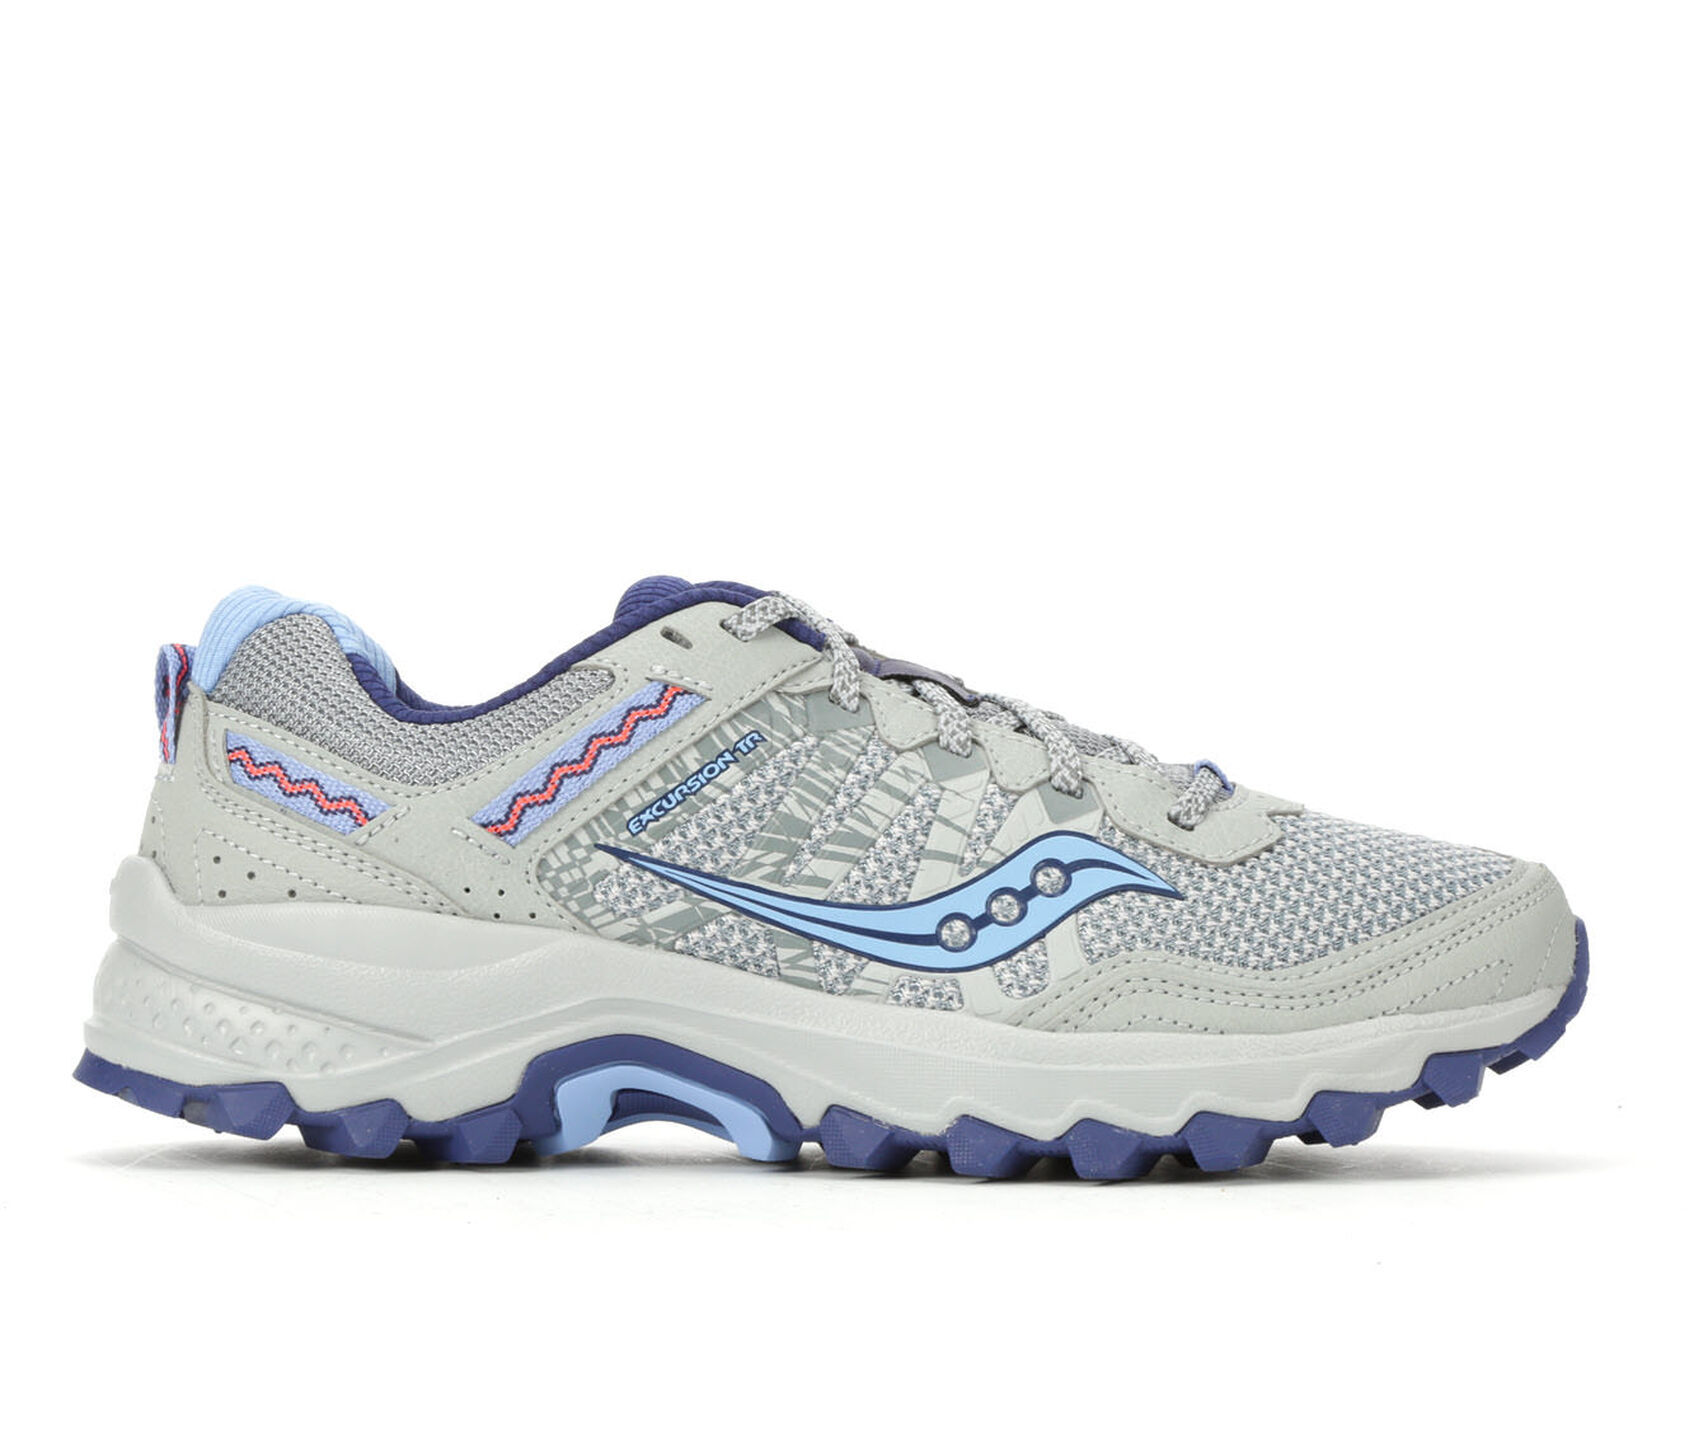 hot sale online a3514 618a1 Women's Saucony Excursion TR 12 Trail Running Shoes